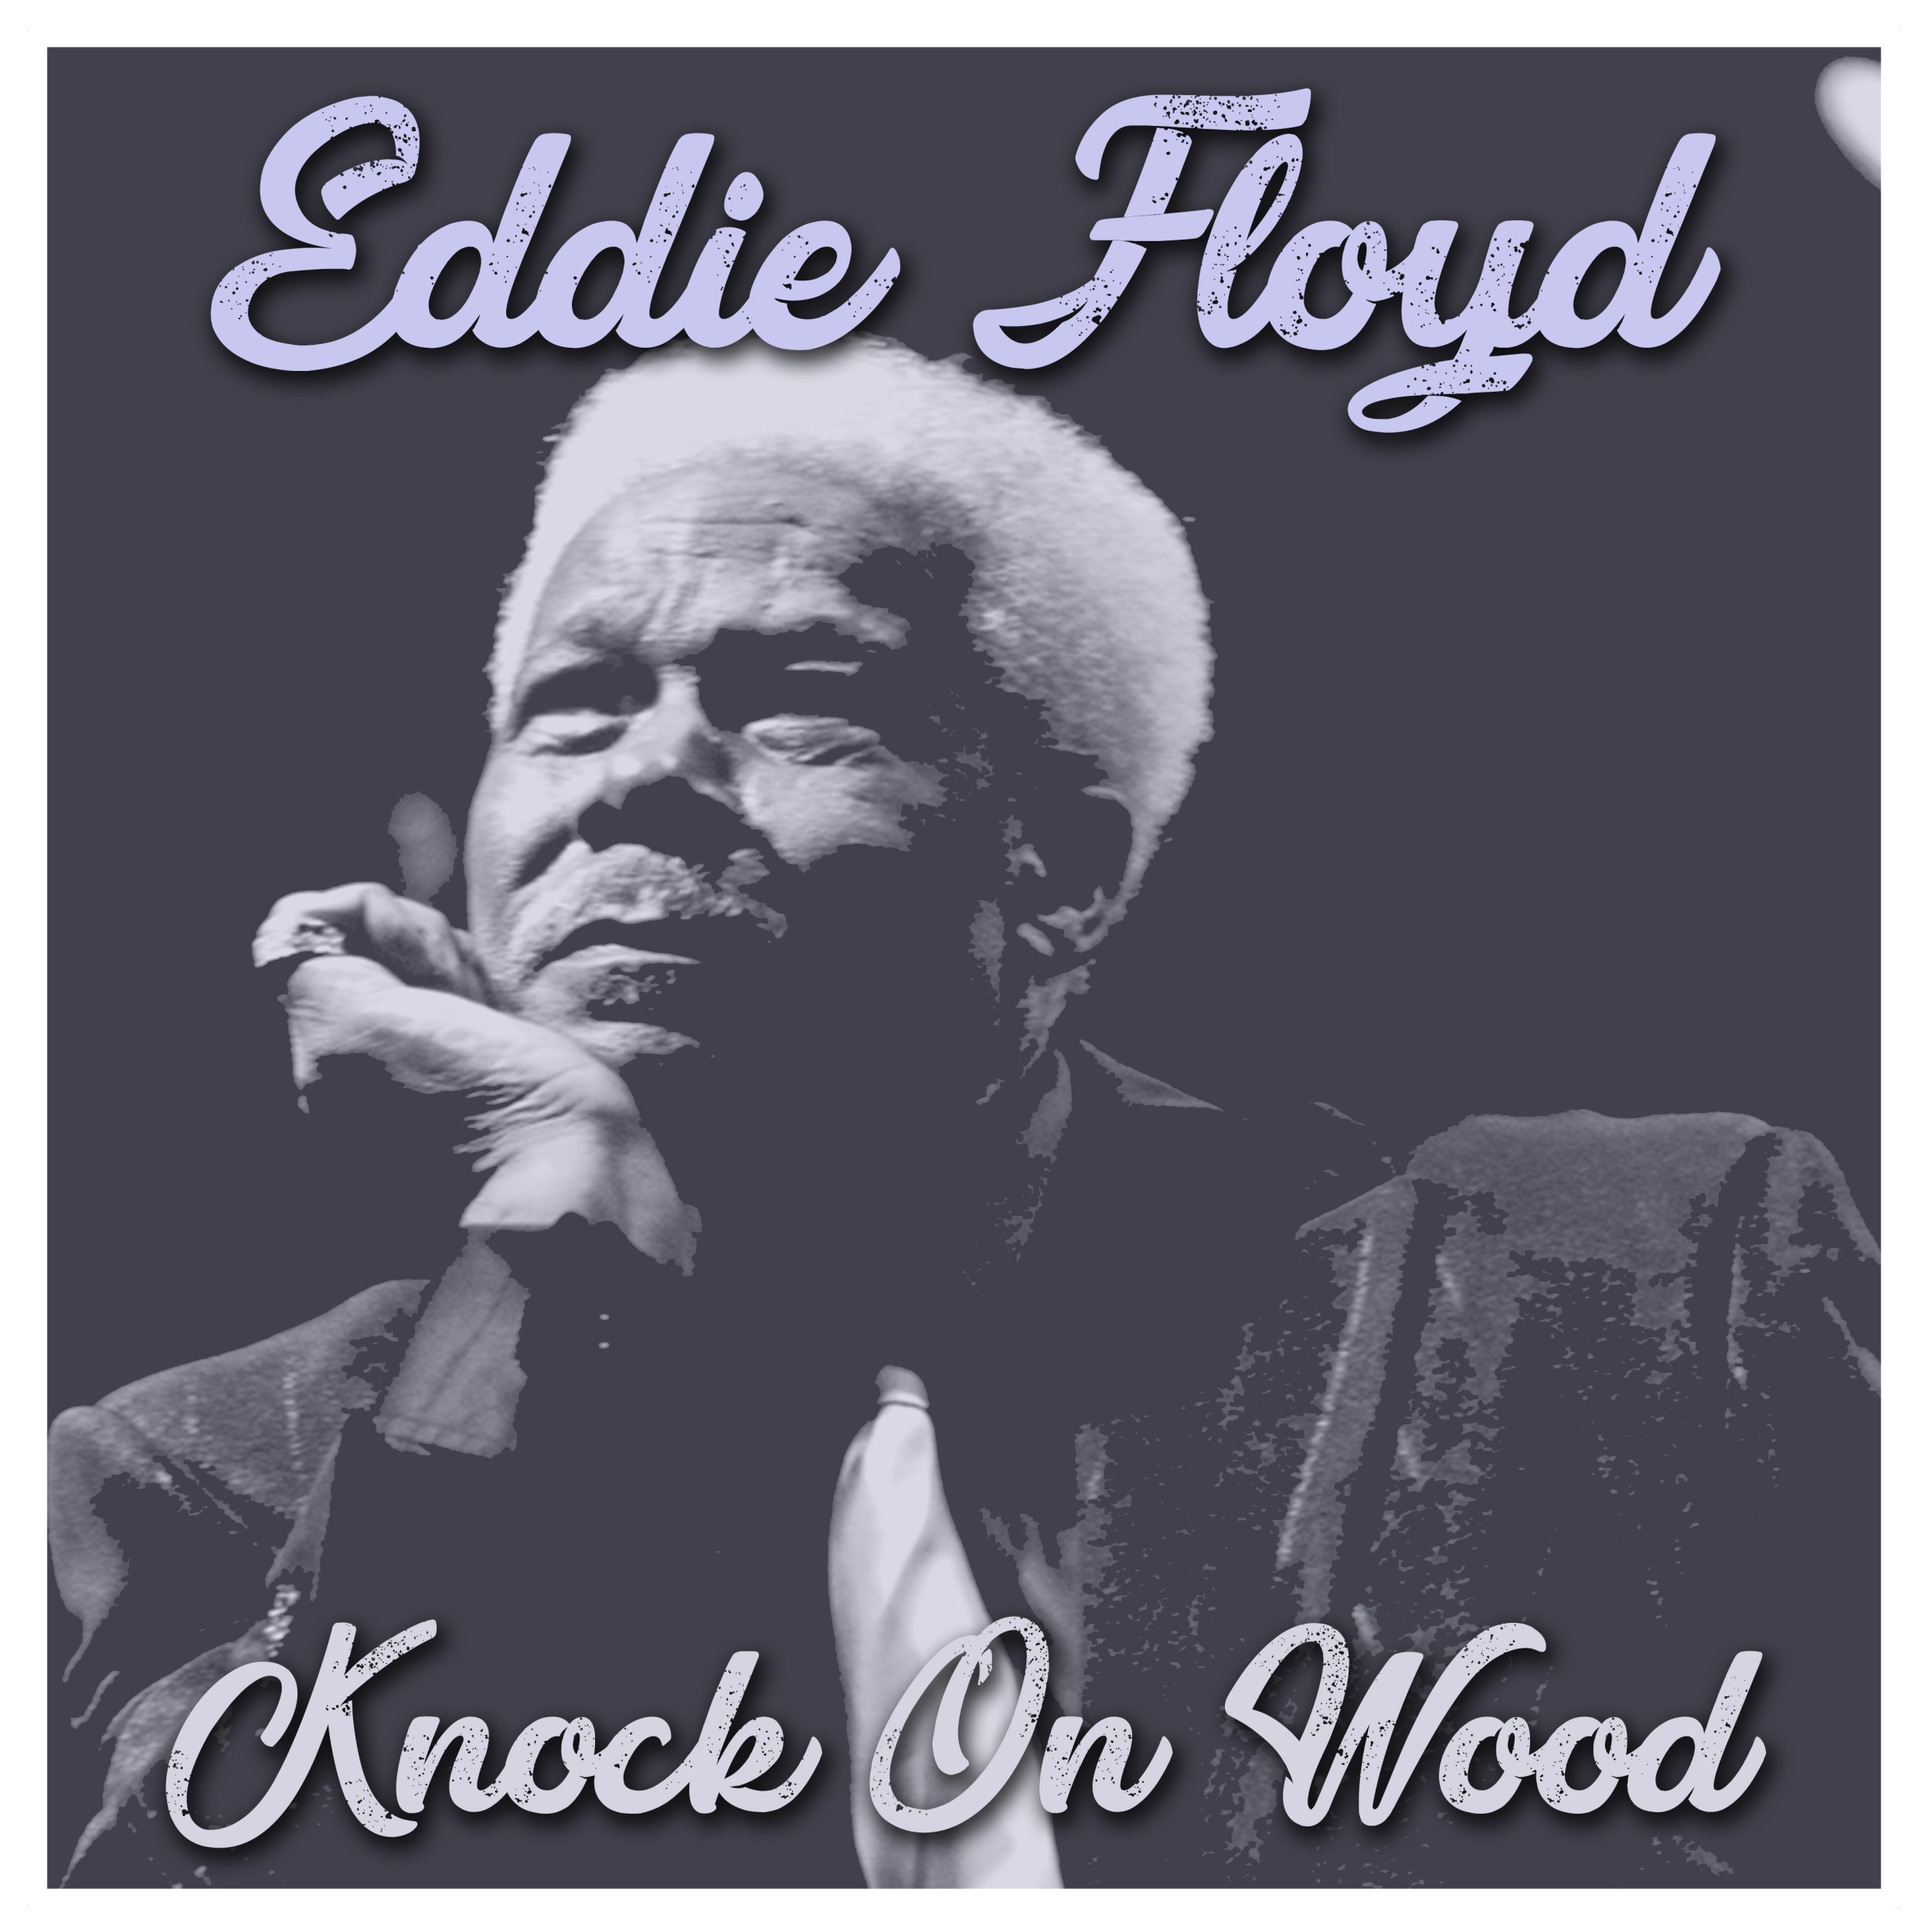 Image of Knock on Wood / Eddie Floyd